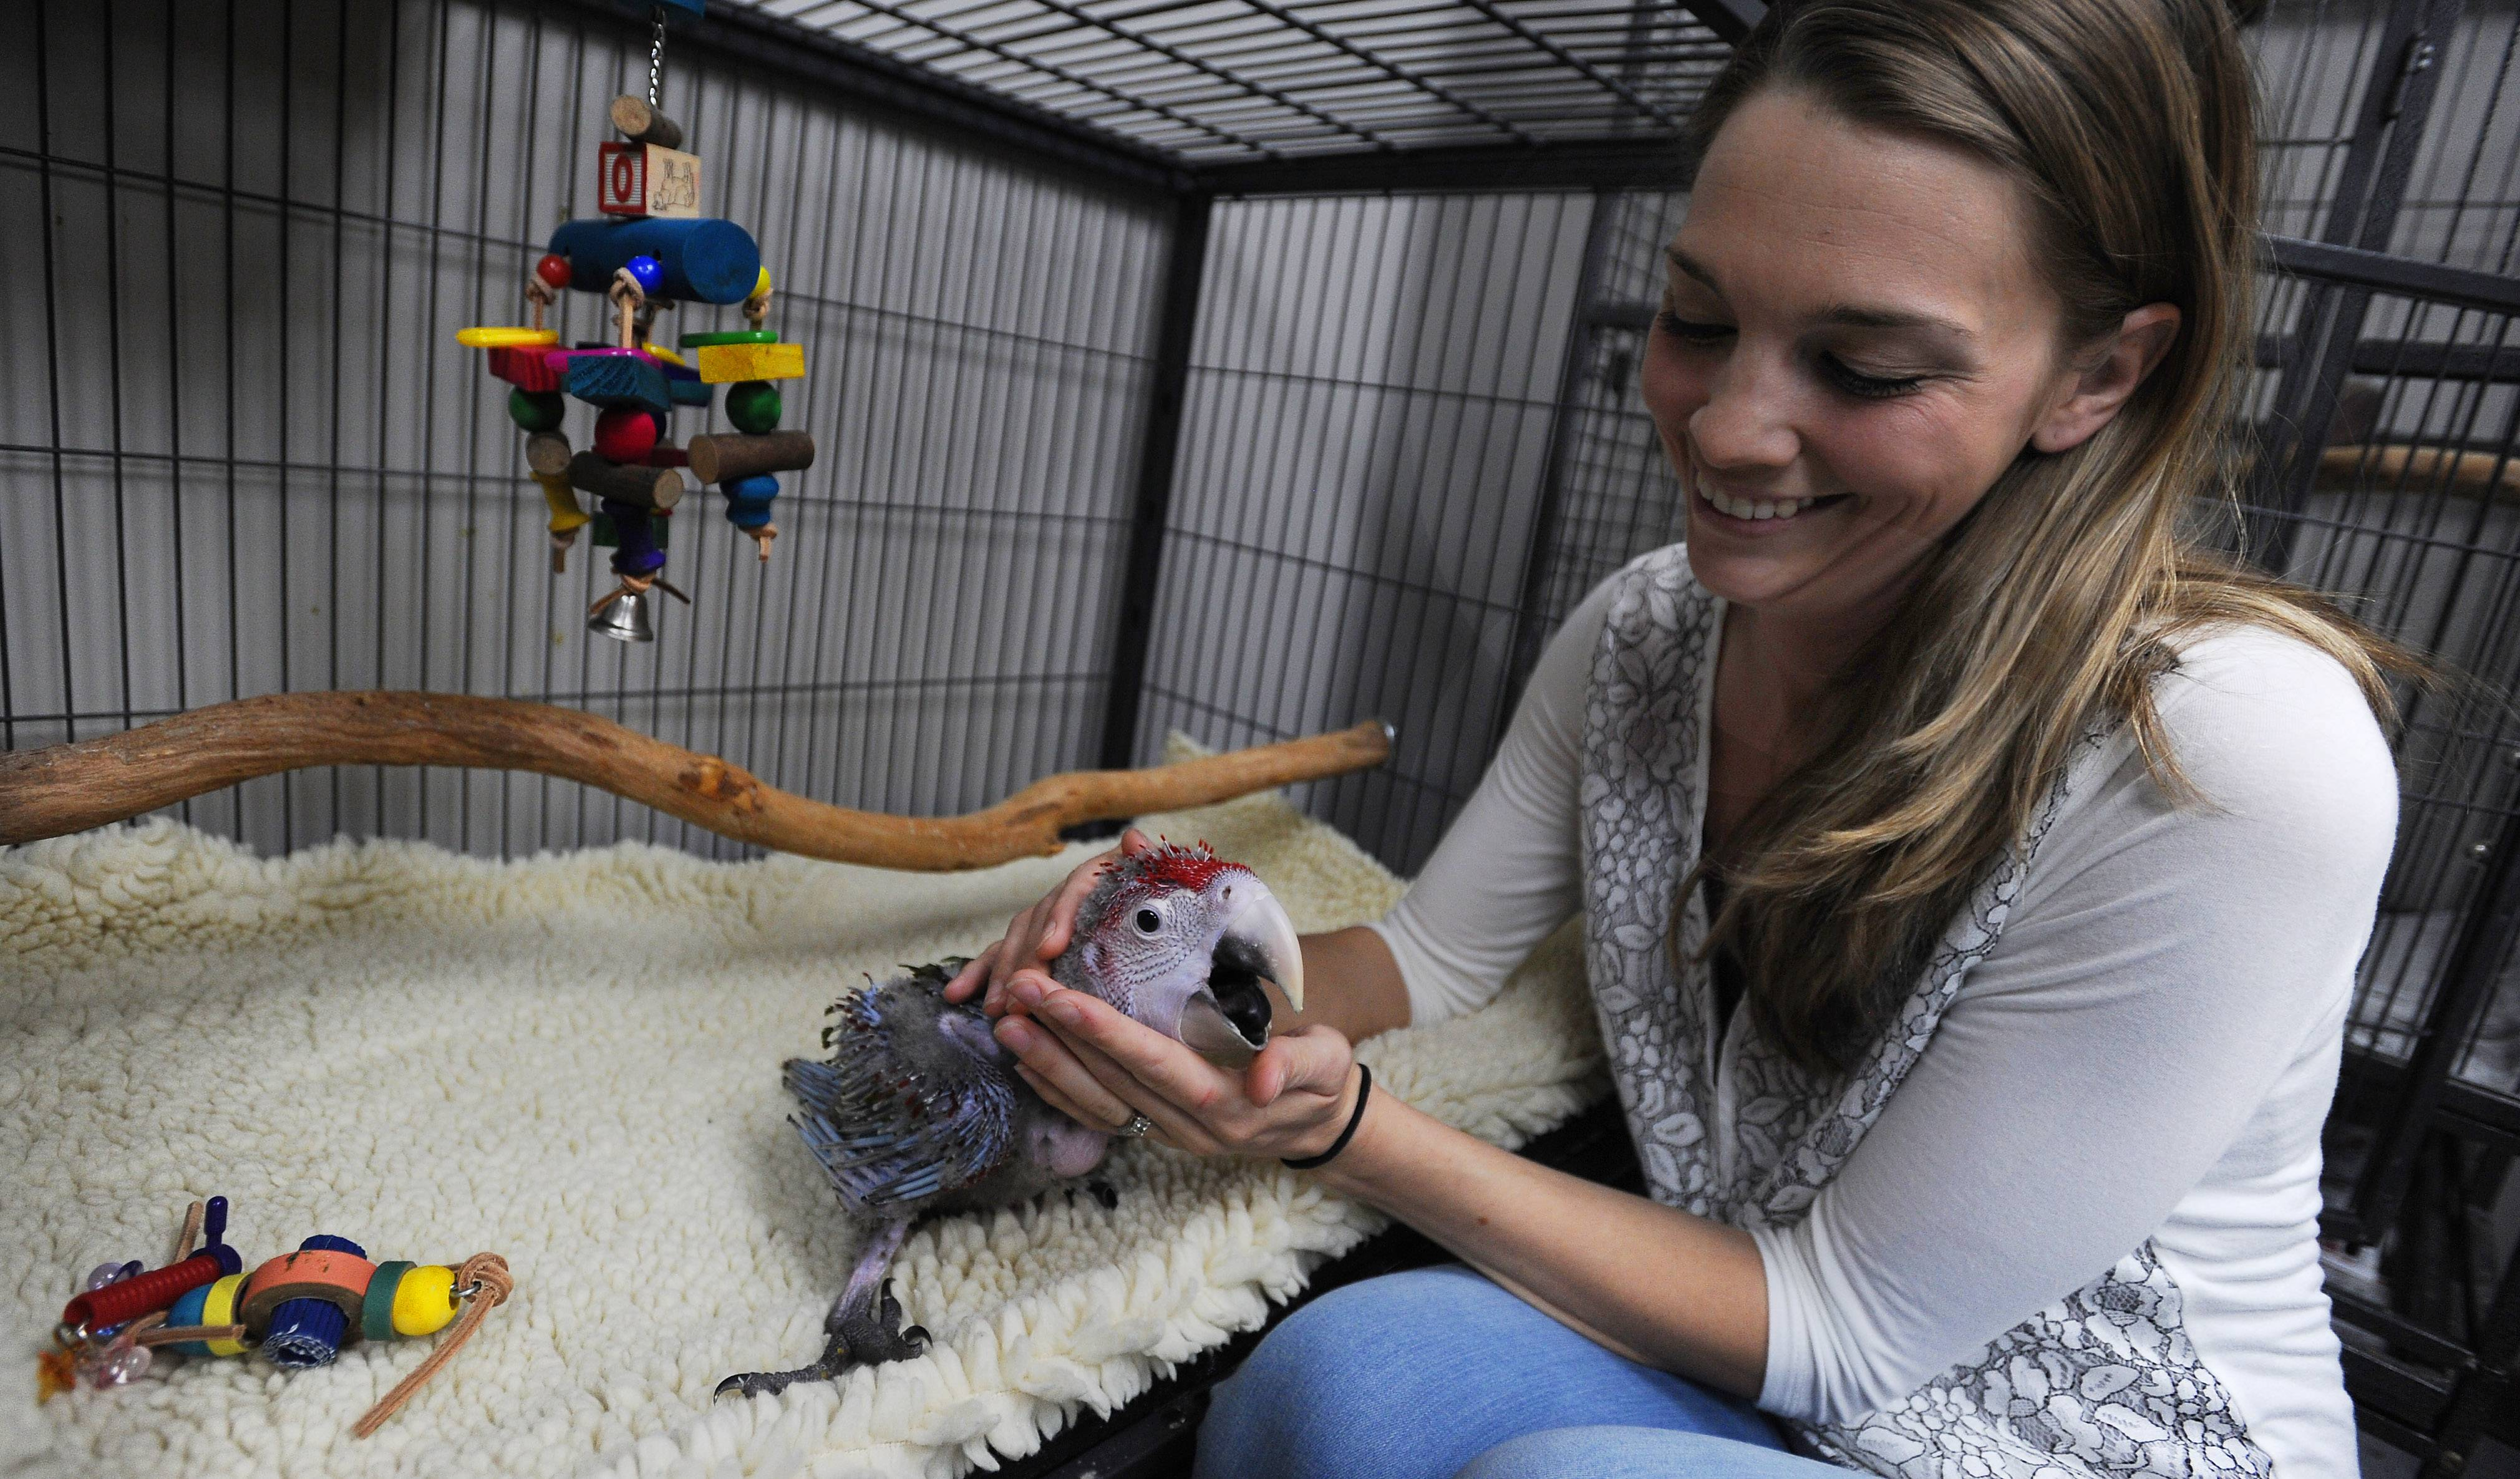 Store manager Alexis Highland has had a love for birds since she was a child. Here, she shows off one of the baby birds at Parrot Stars, an exotic bird store she manages in downtown Arlington Heights.